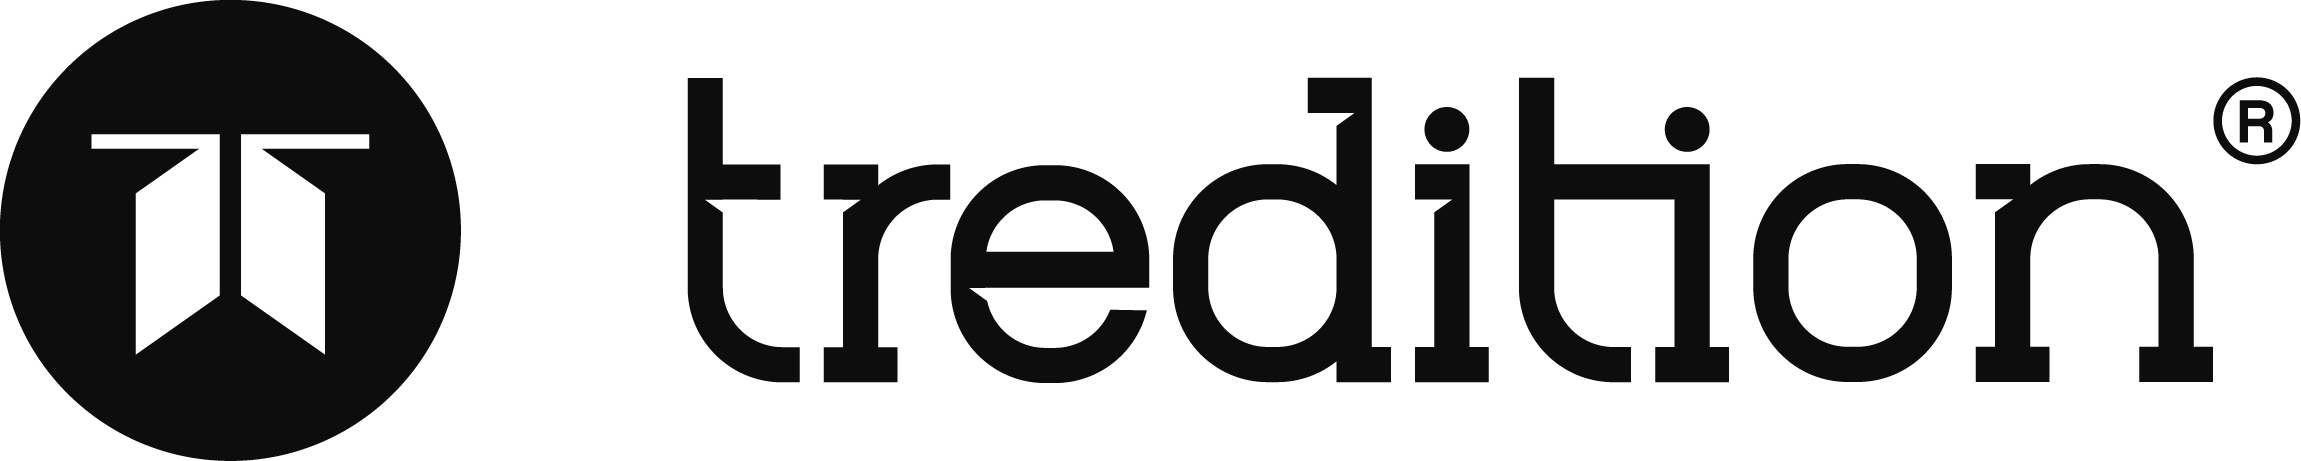 Logo tredition JPG